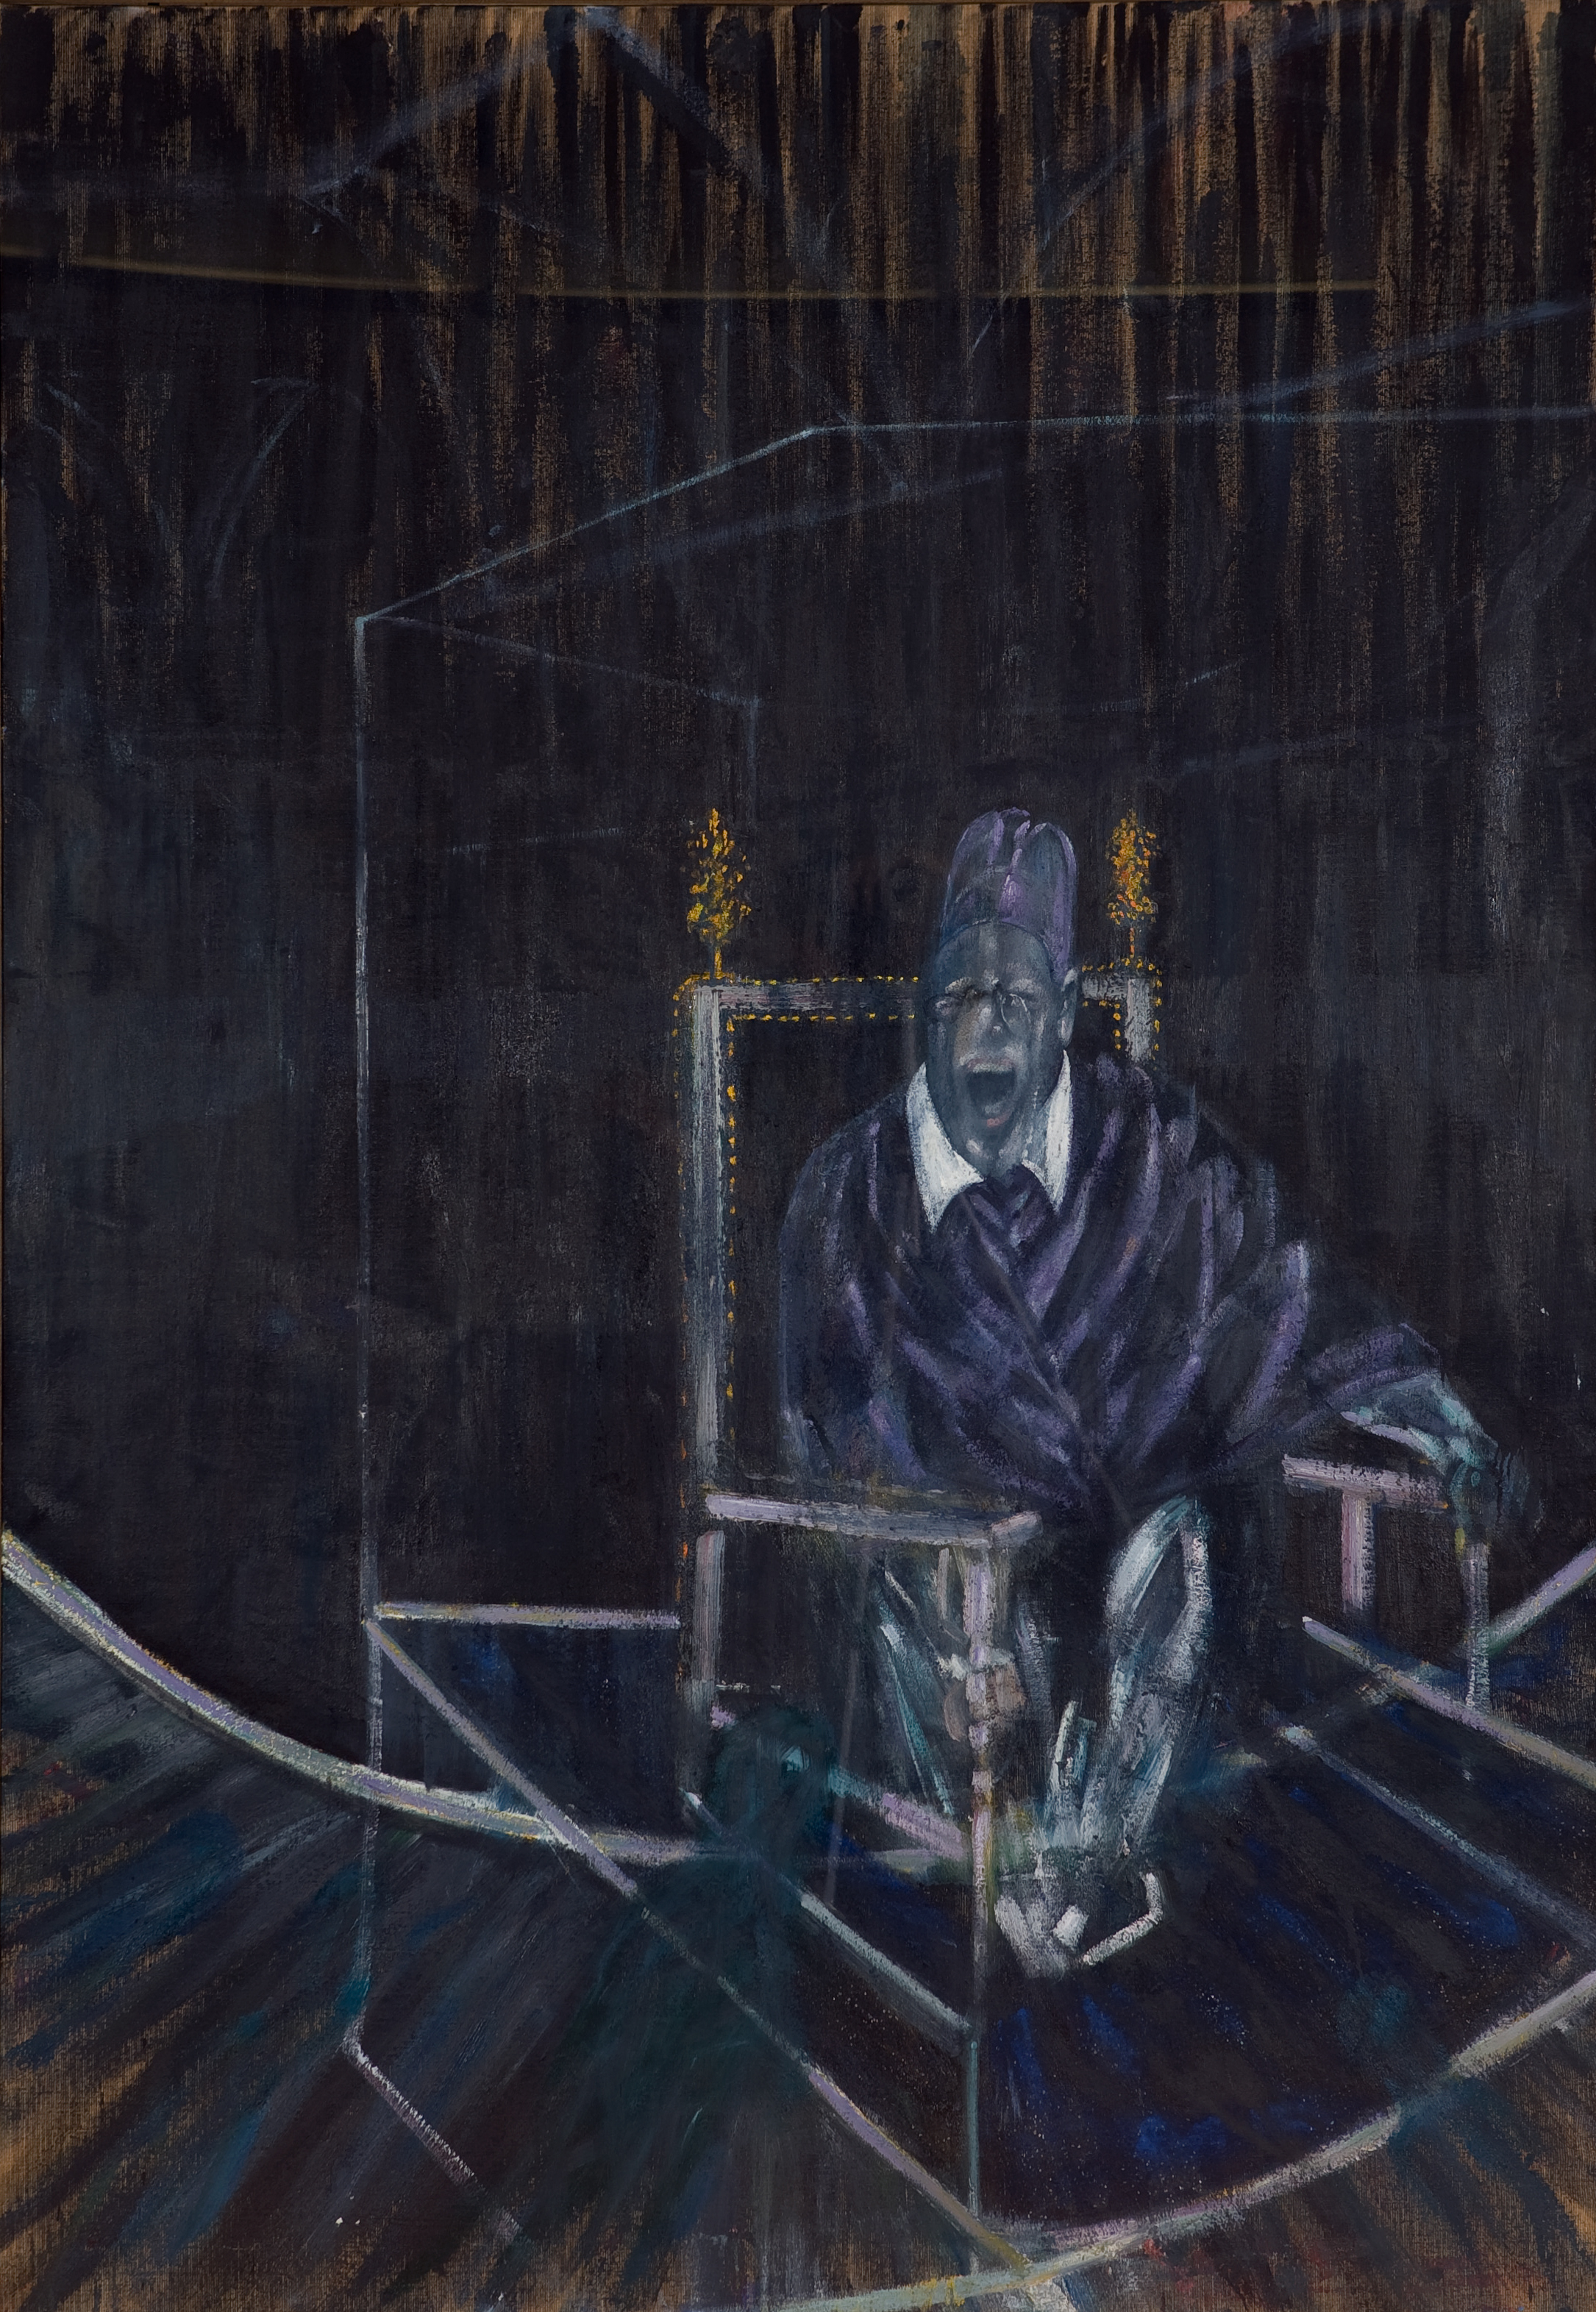 © The Estate of Francis Bacon. All rights reserved / VG Bild-Kunst, Bonn 2018, Foto: Kunsthalle Mannheim/ Cem Yücetas